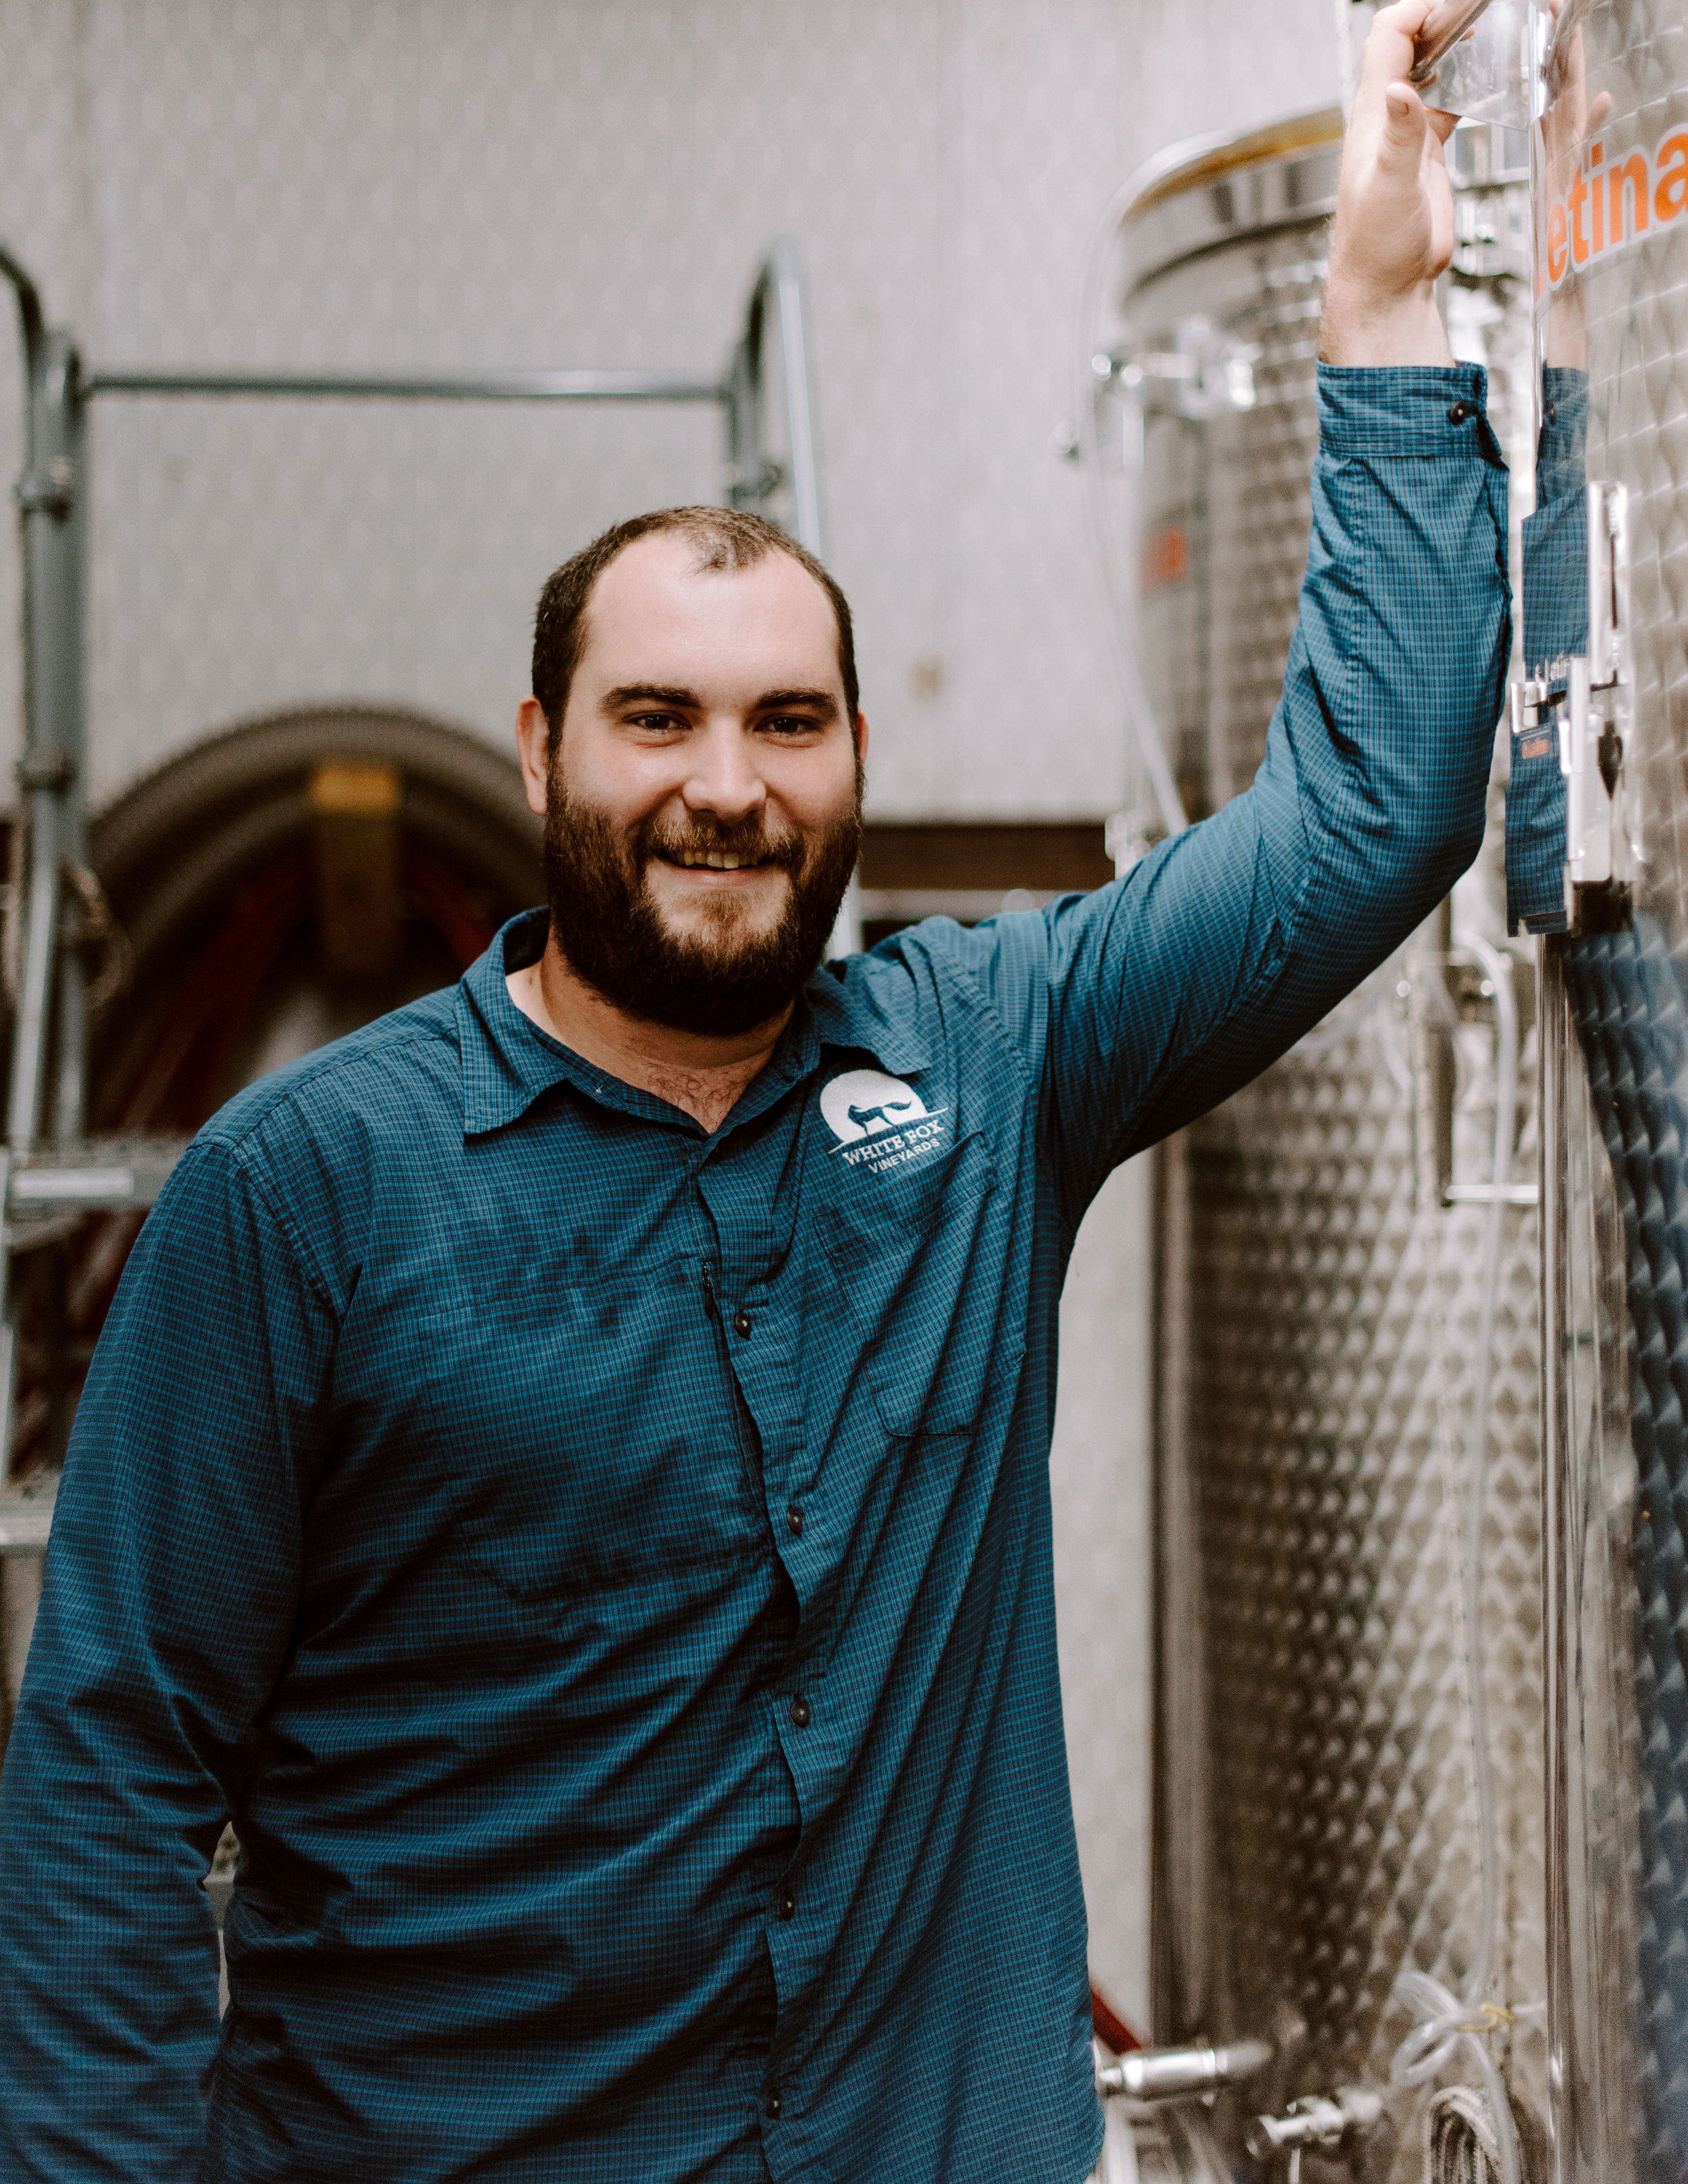 Weston Parsell || Operations Manager - Weston joined the White Fox team during the early stages of the vineyard as a helping hand, and his role has expanded to included festivals, distribution and more. A staunch Texas Tech Red Raiders fan, Weston enjoys traveling with his girlfriend, playing golf and fishing with his brothers.